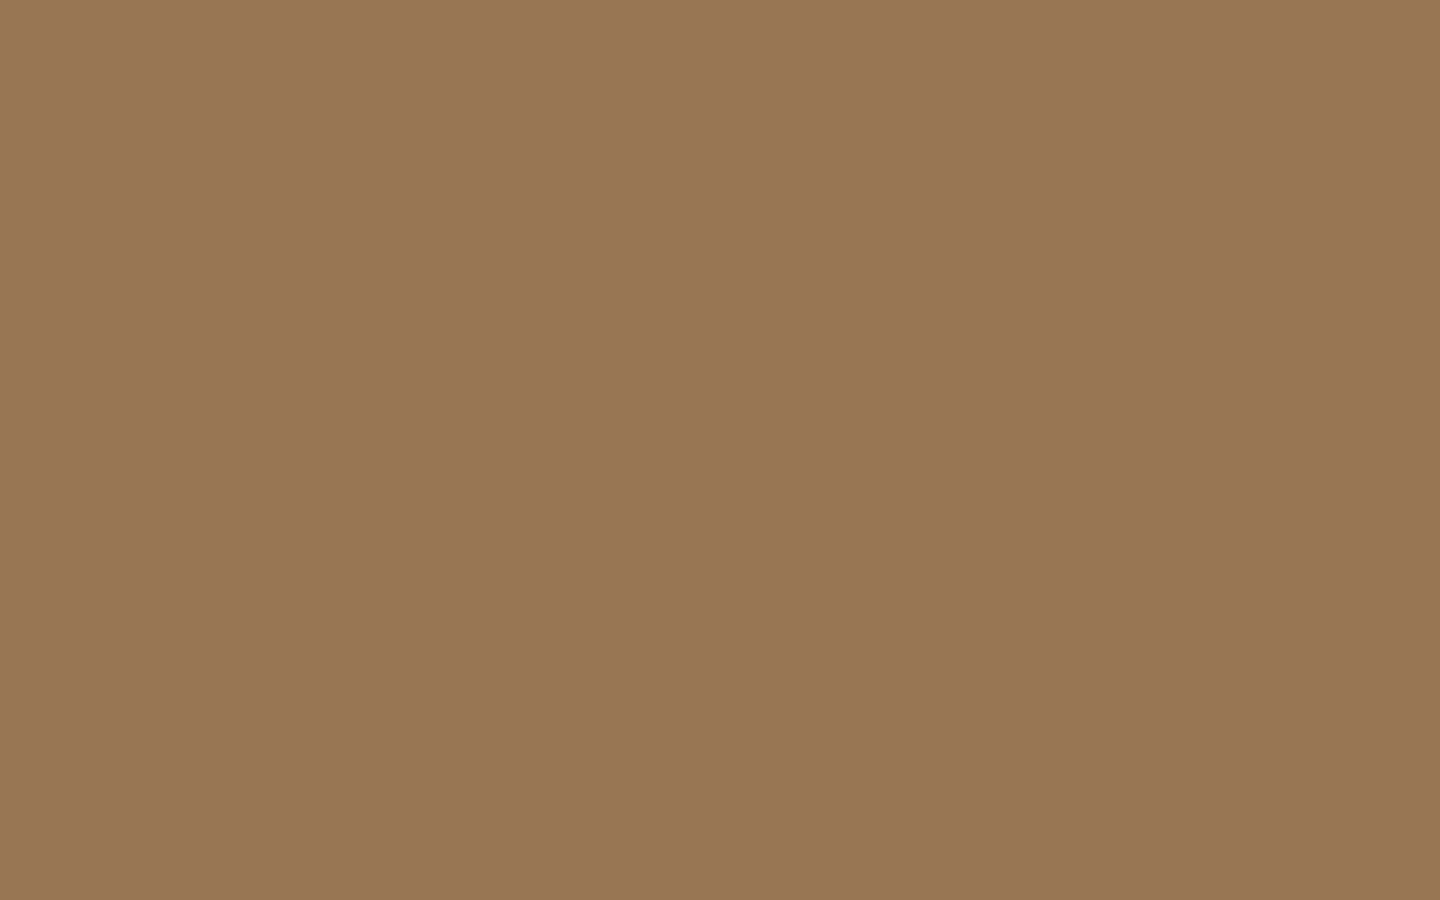 1440x900 Pale Brown Solid Color Background